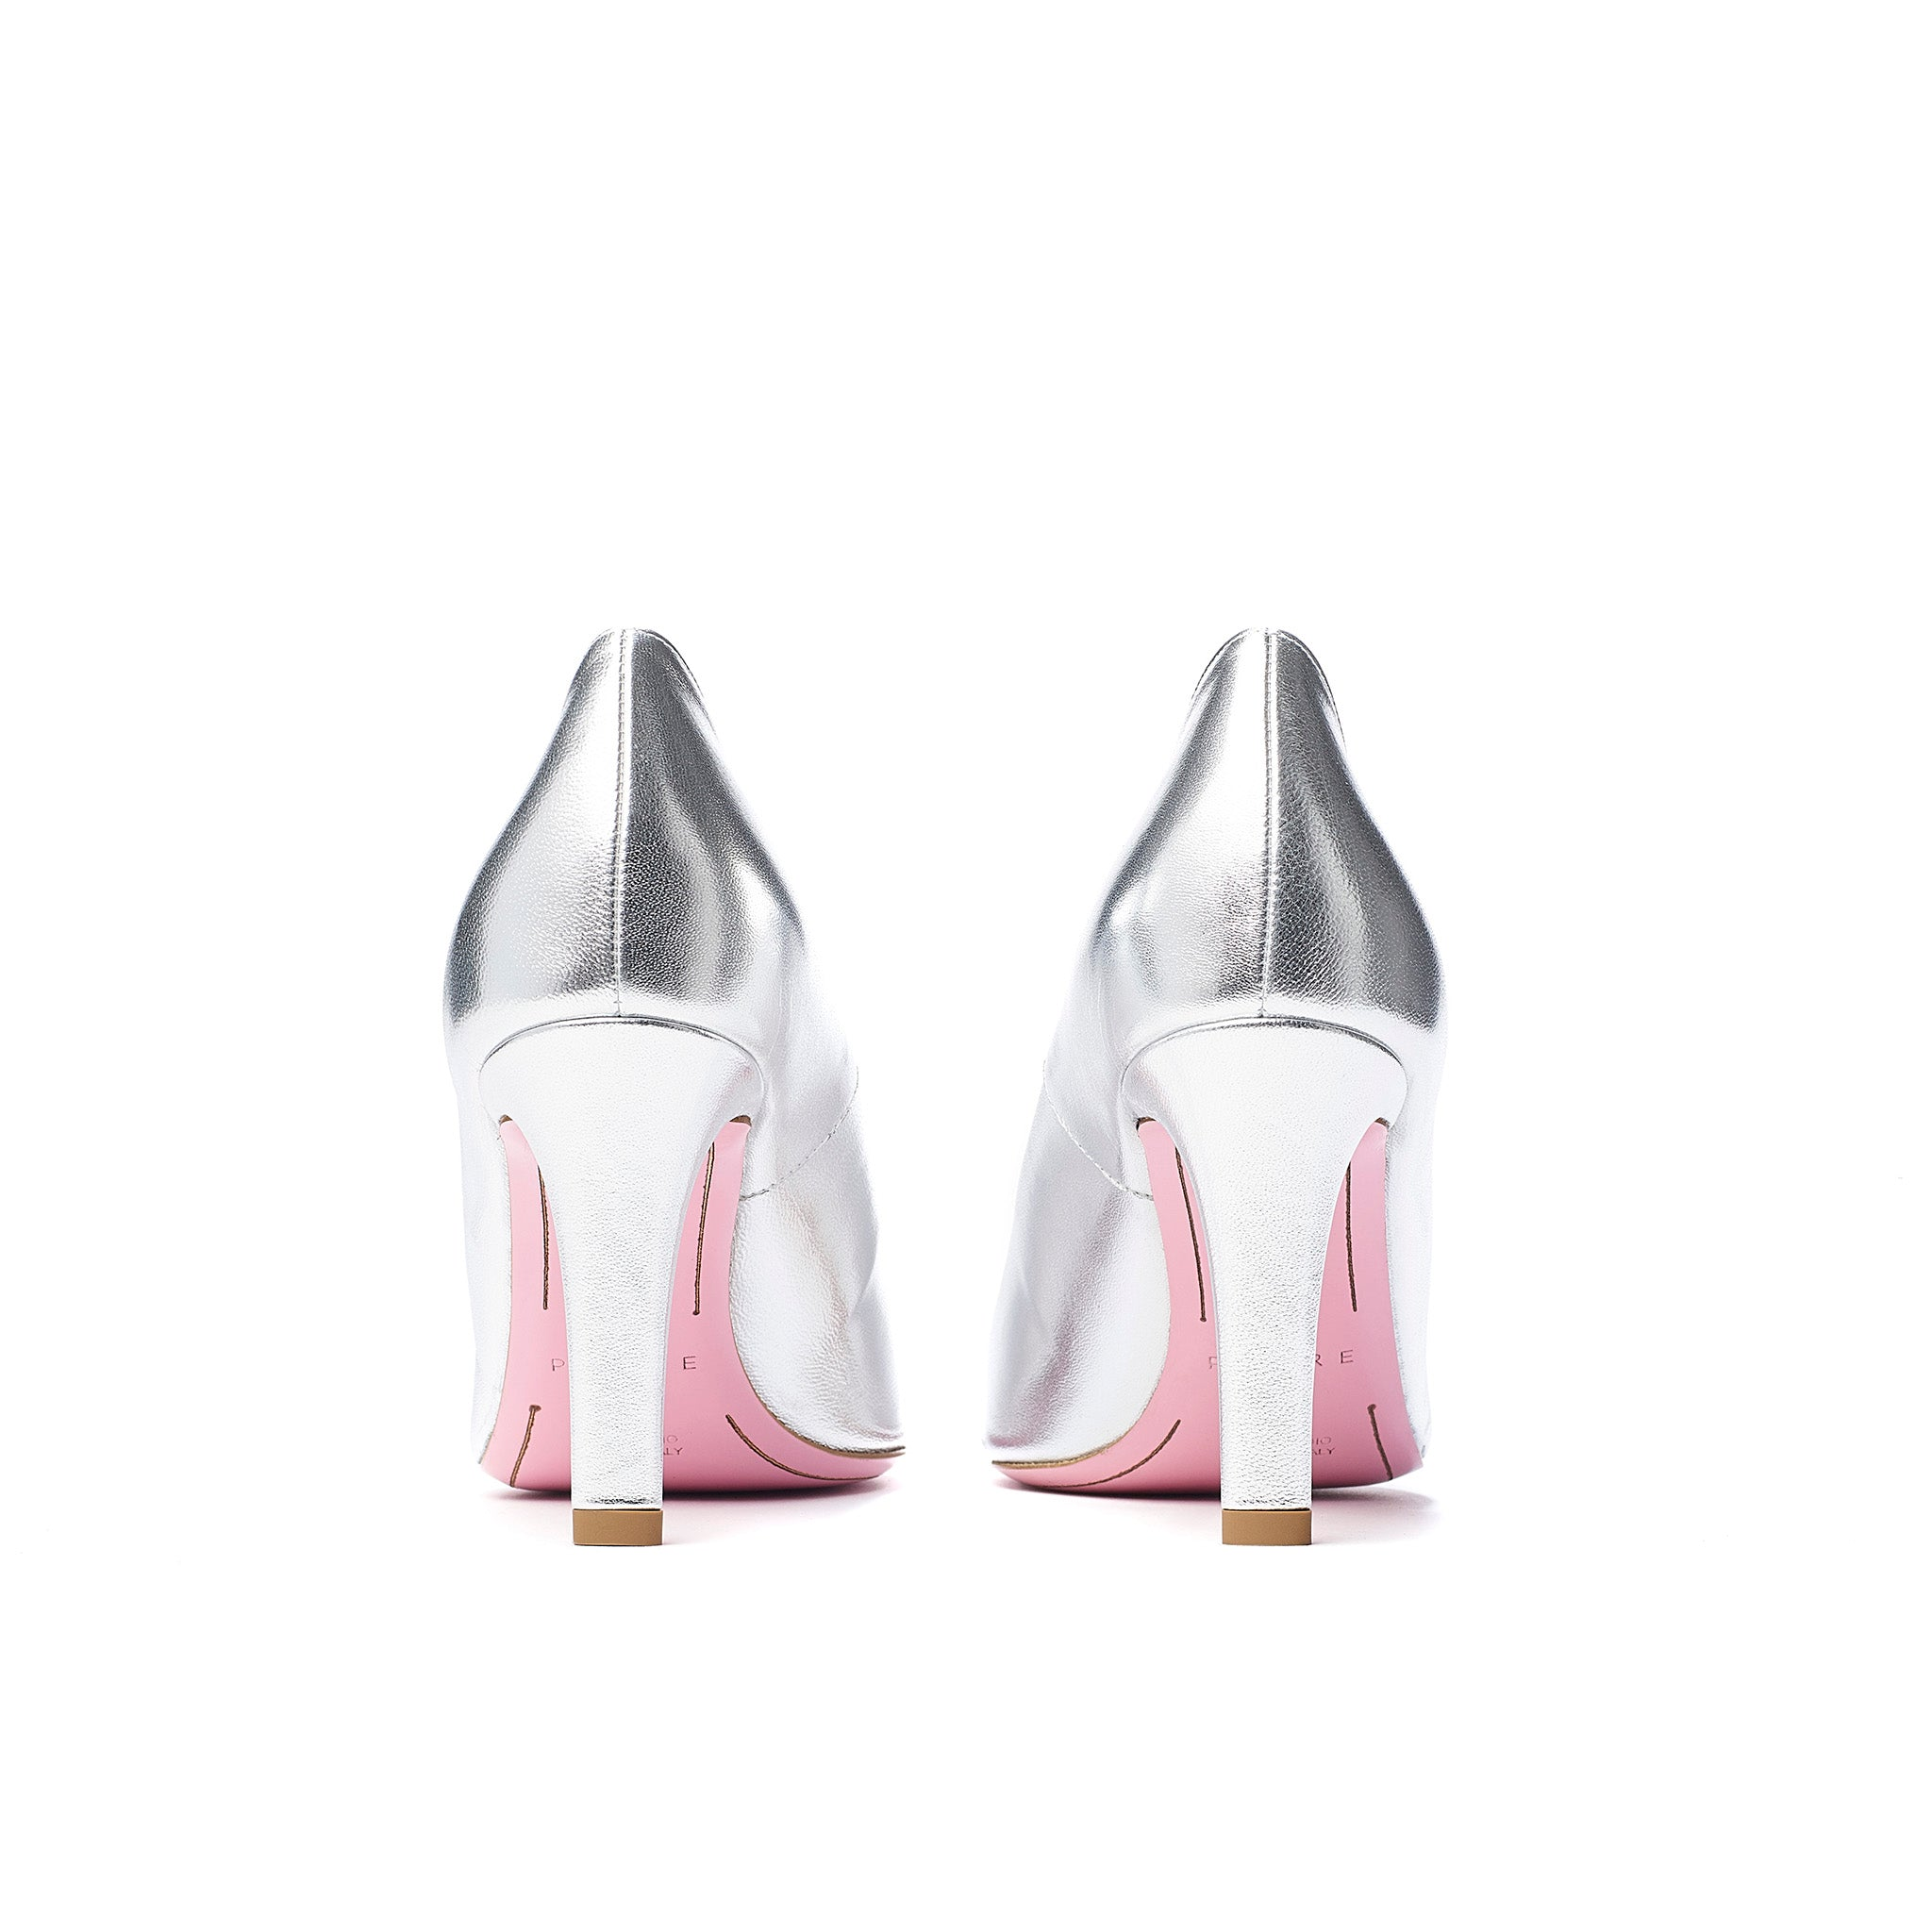 Phare asymmetrical pump in metallic silver leather back view